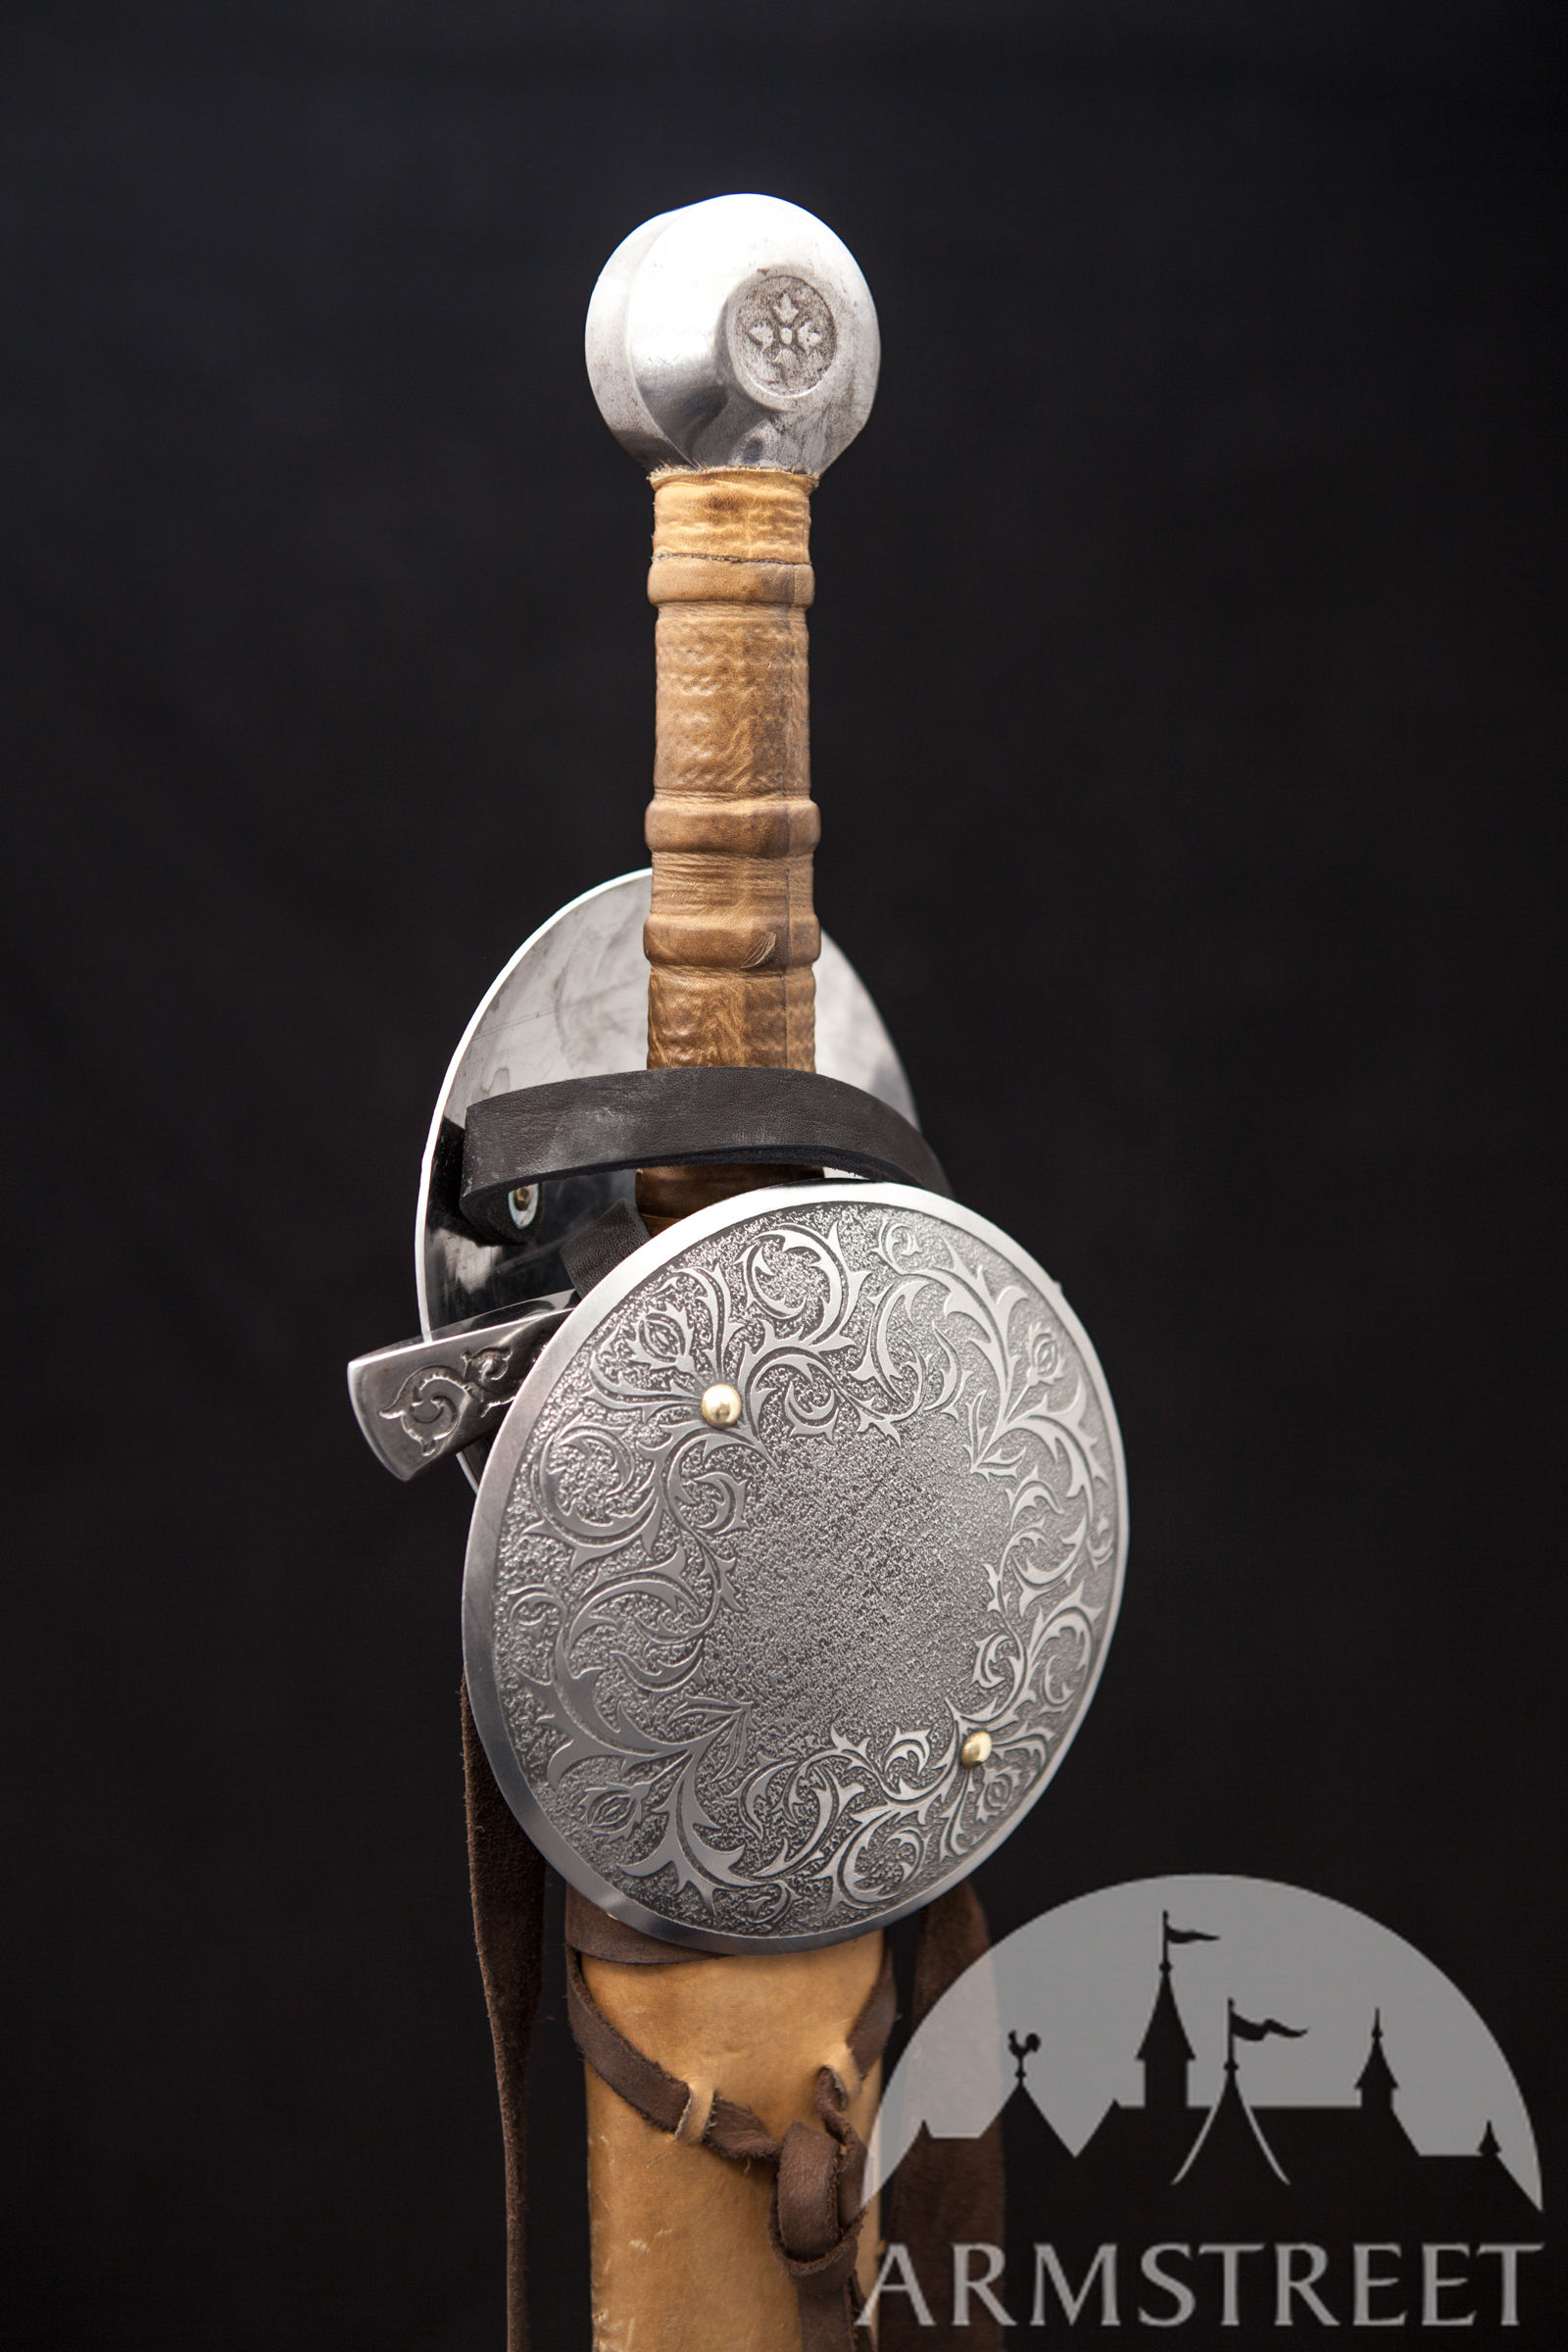 knight of fortune armour rondels available in stainless by medieval store armstreet. Black Bedroom Furniture Sets. Home Design Ideas